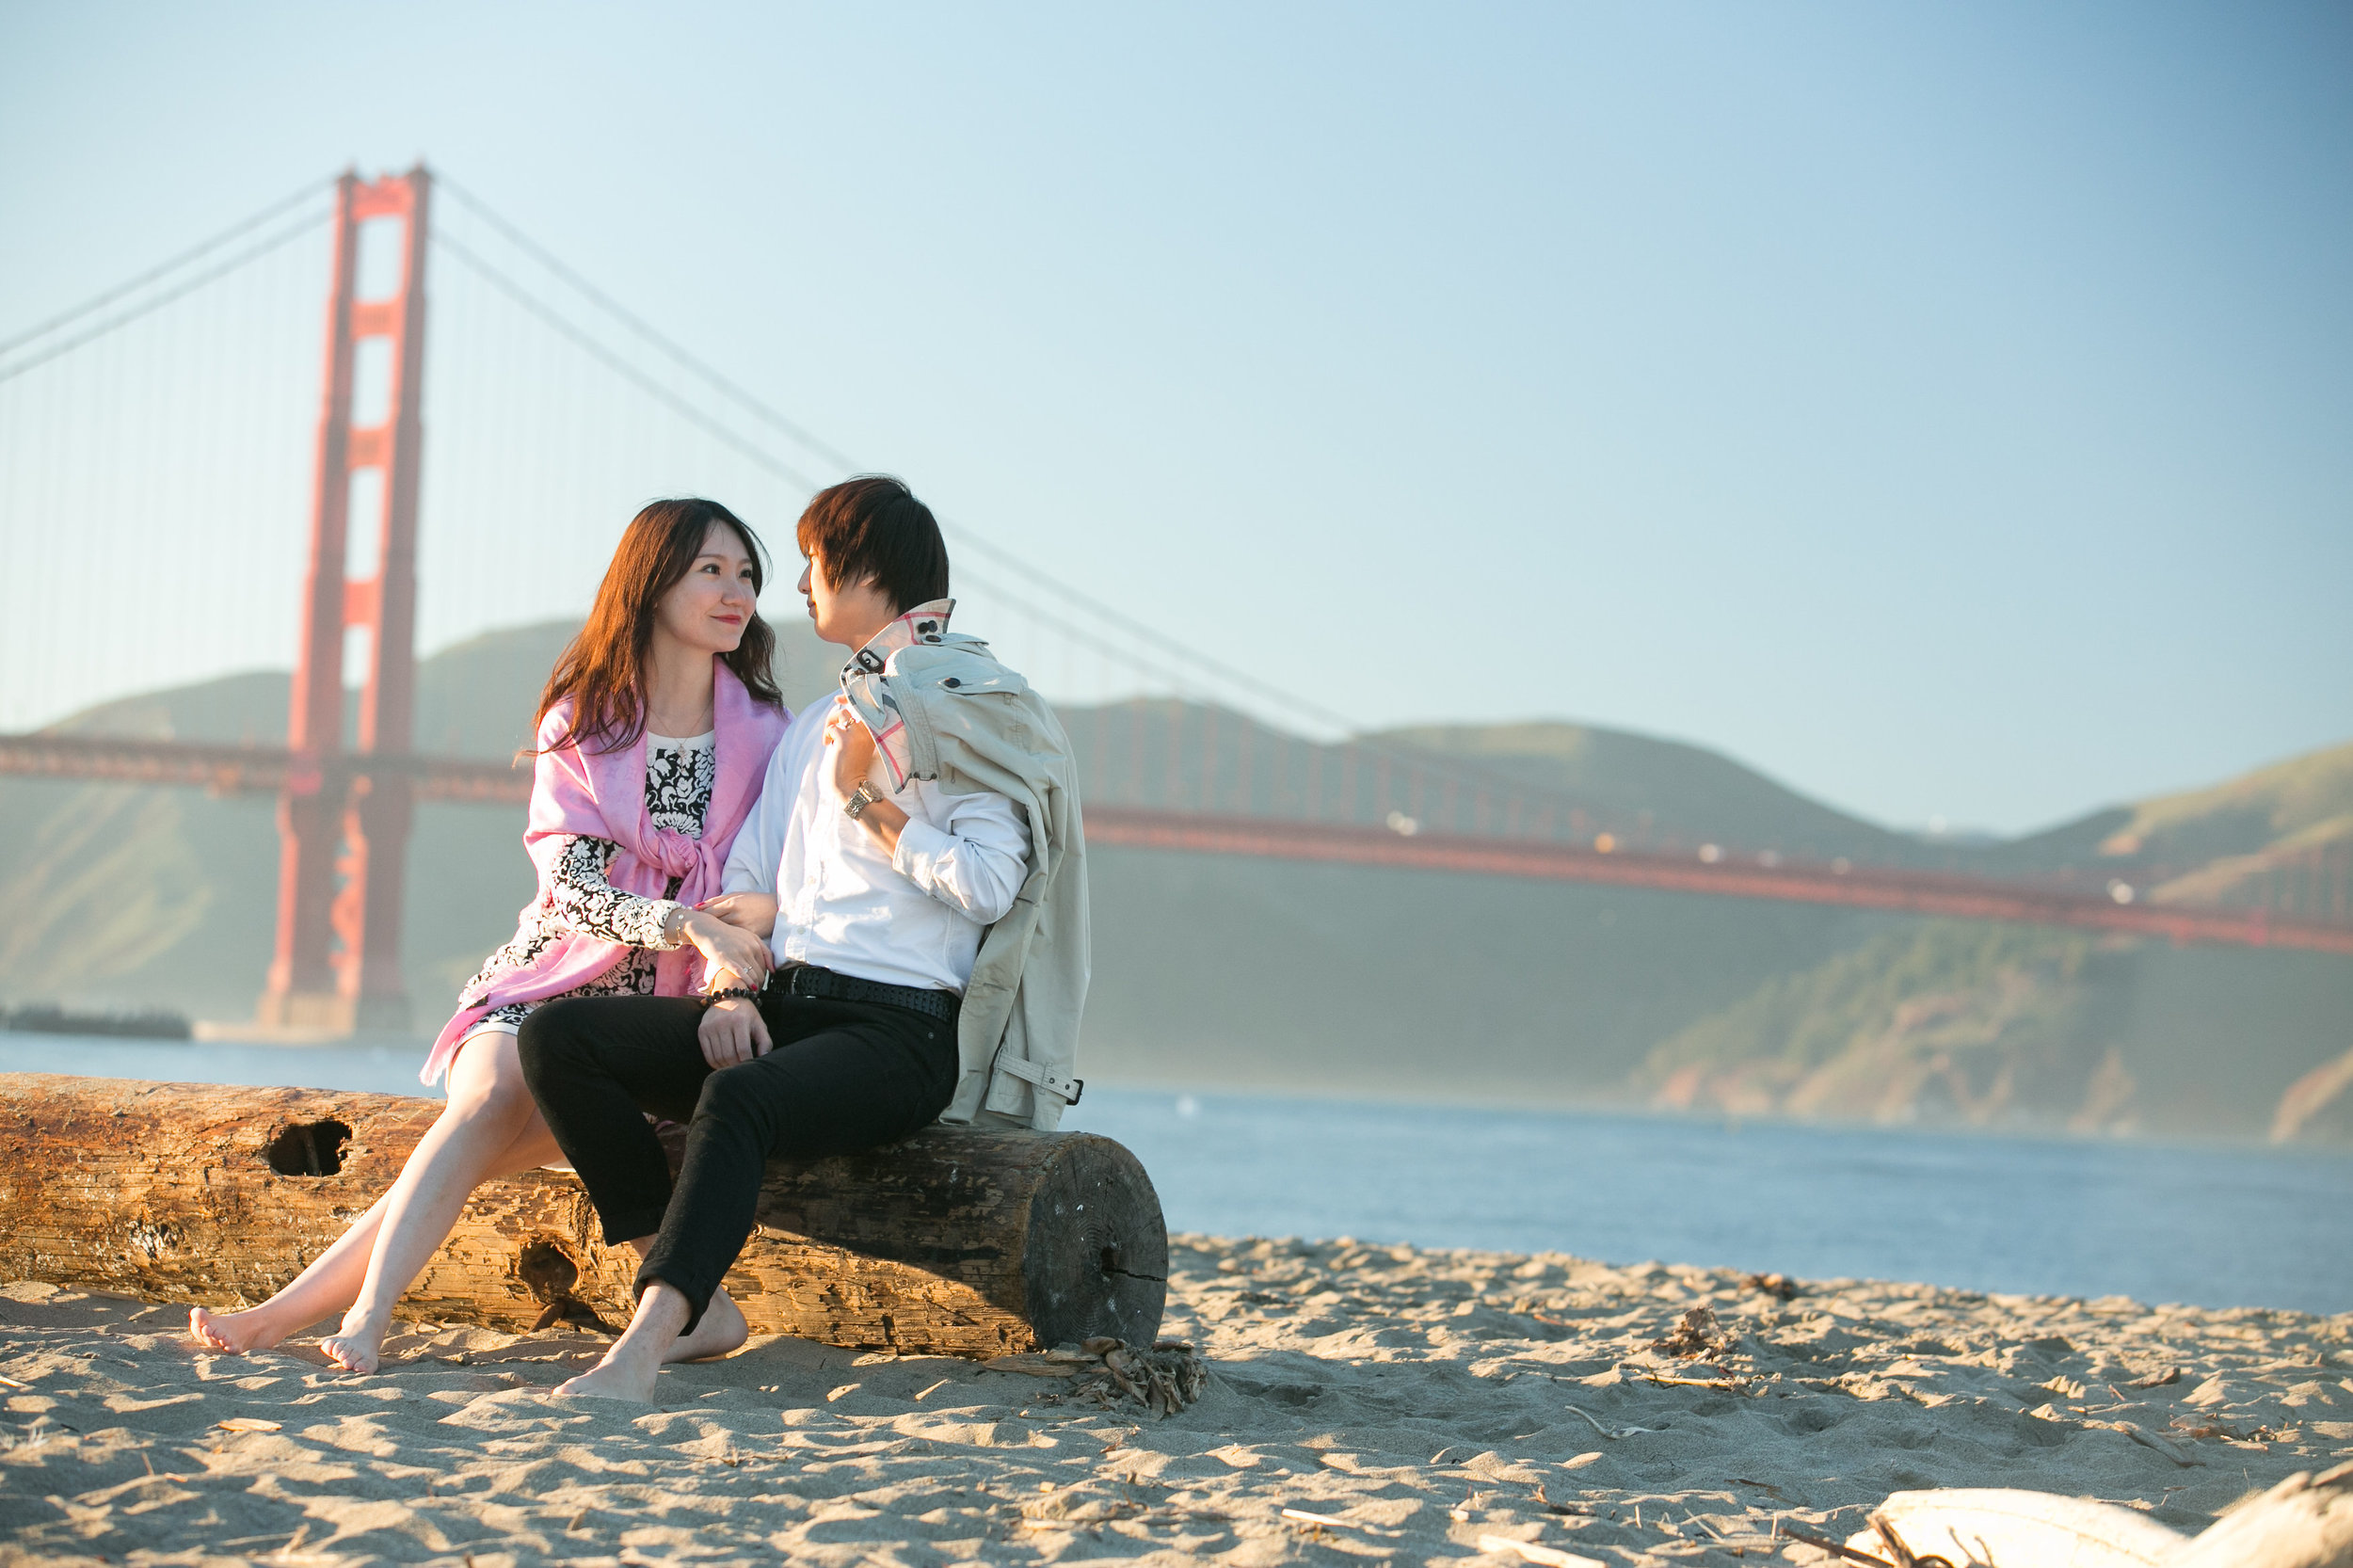 crissy field engagement session david kim photography 3.jpg